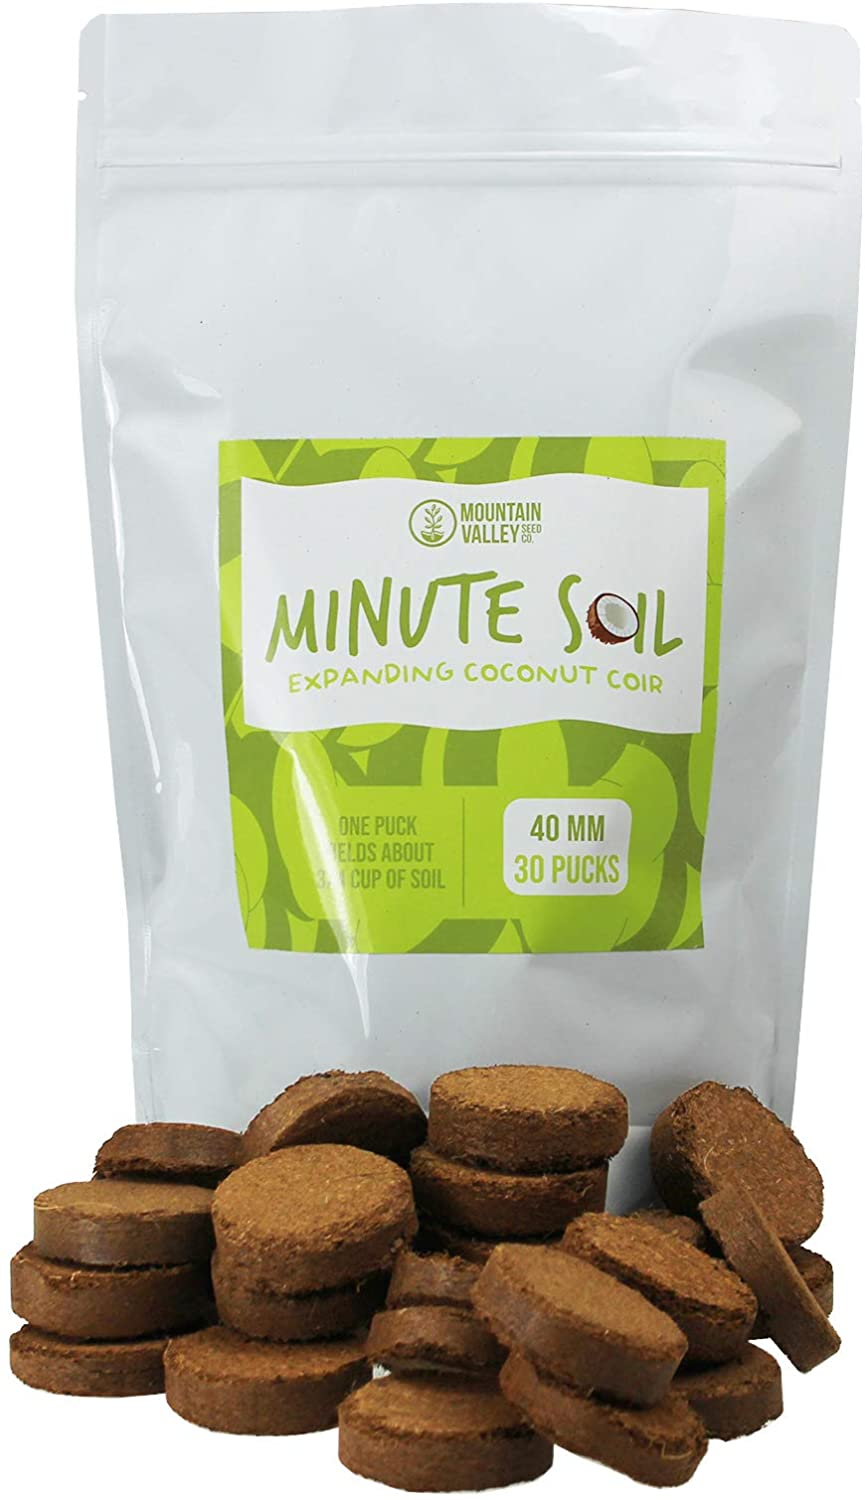 Minute Soil - Compressed Coco Coir Fiber Grow Medium - 40 MM Wafers - Bag of 30 = 5.5 Quarts of Potting Soil - Indoor Container Gardening: Seed Starts, Wheatgrass, More - Just Add Water - OMRI Organic